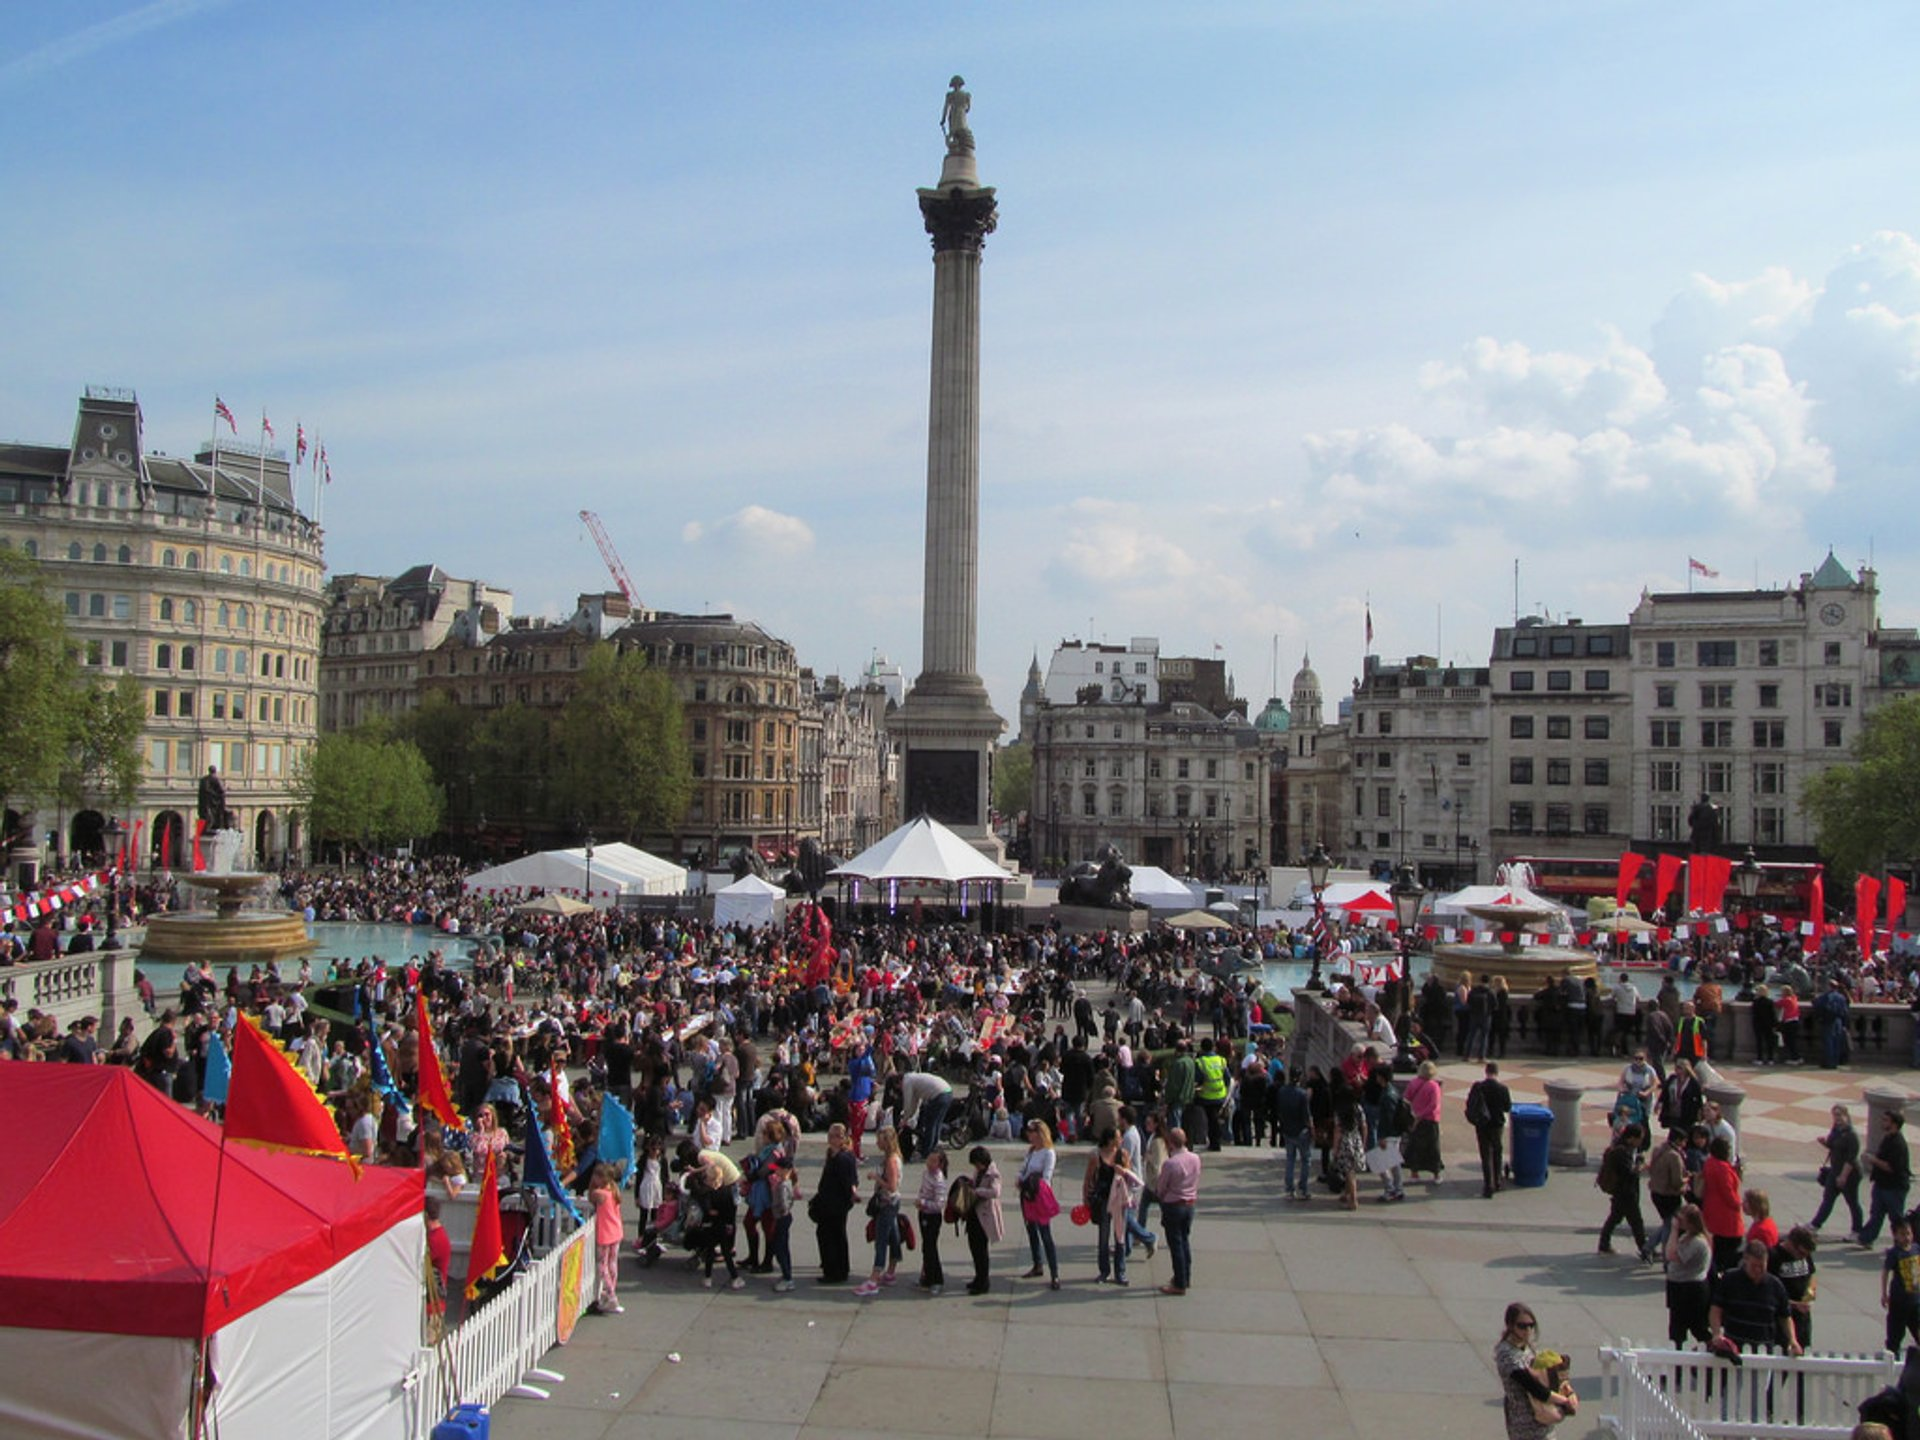 Feast of St George in Trafalgar Square in London - Best Season 2020